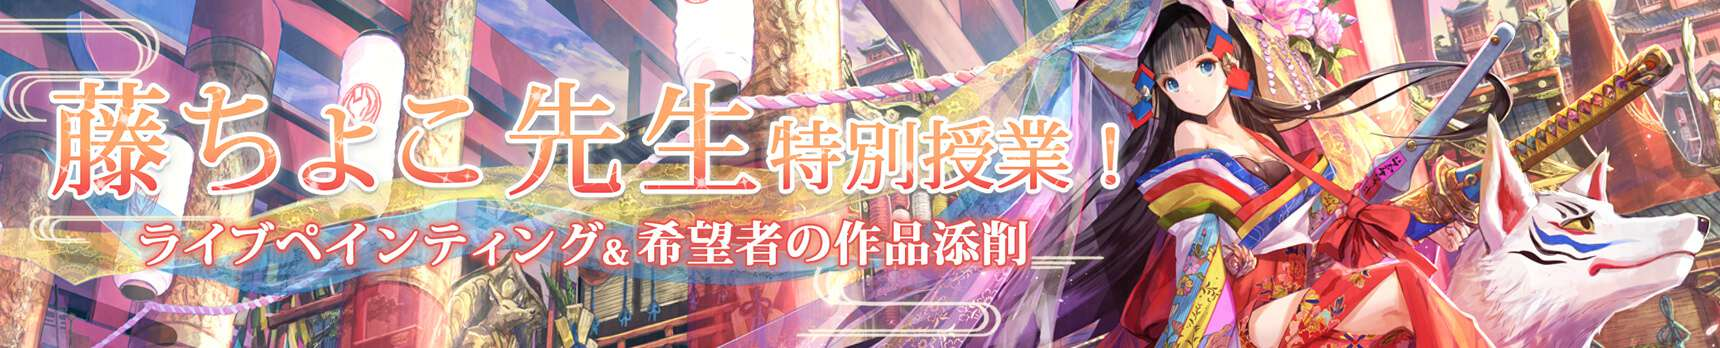 Fujichoko re banner pc